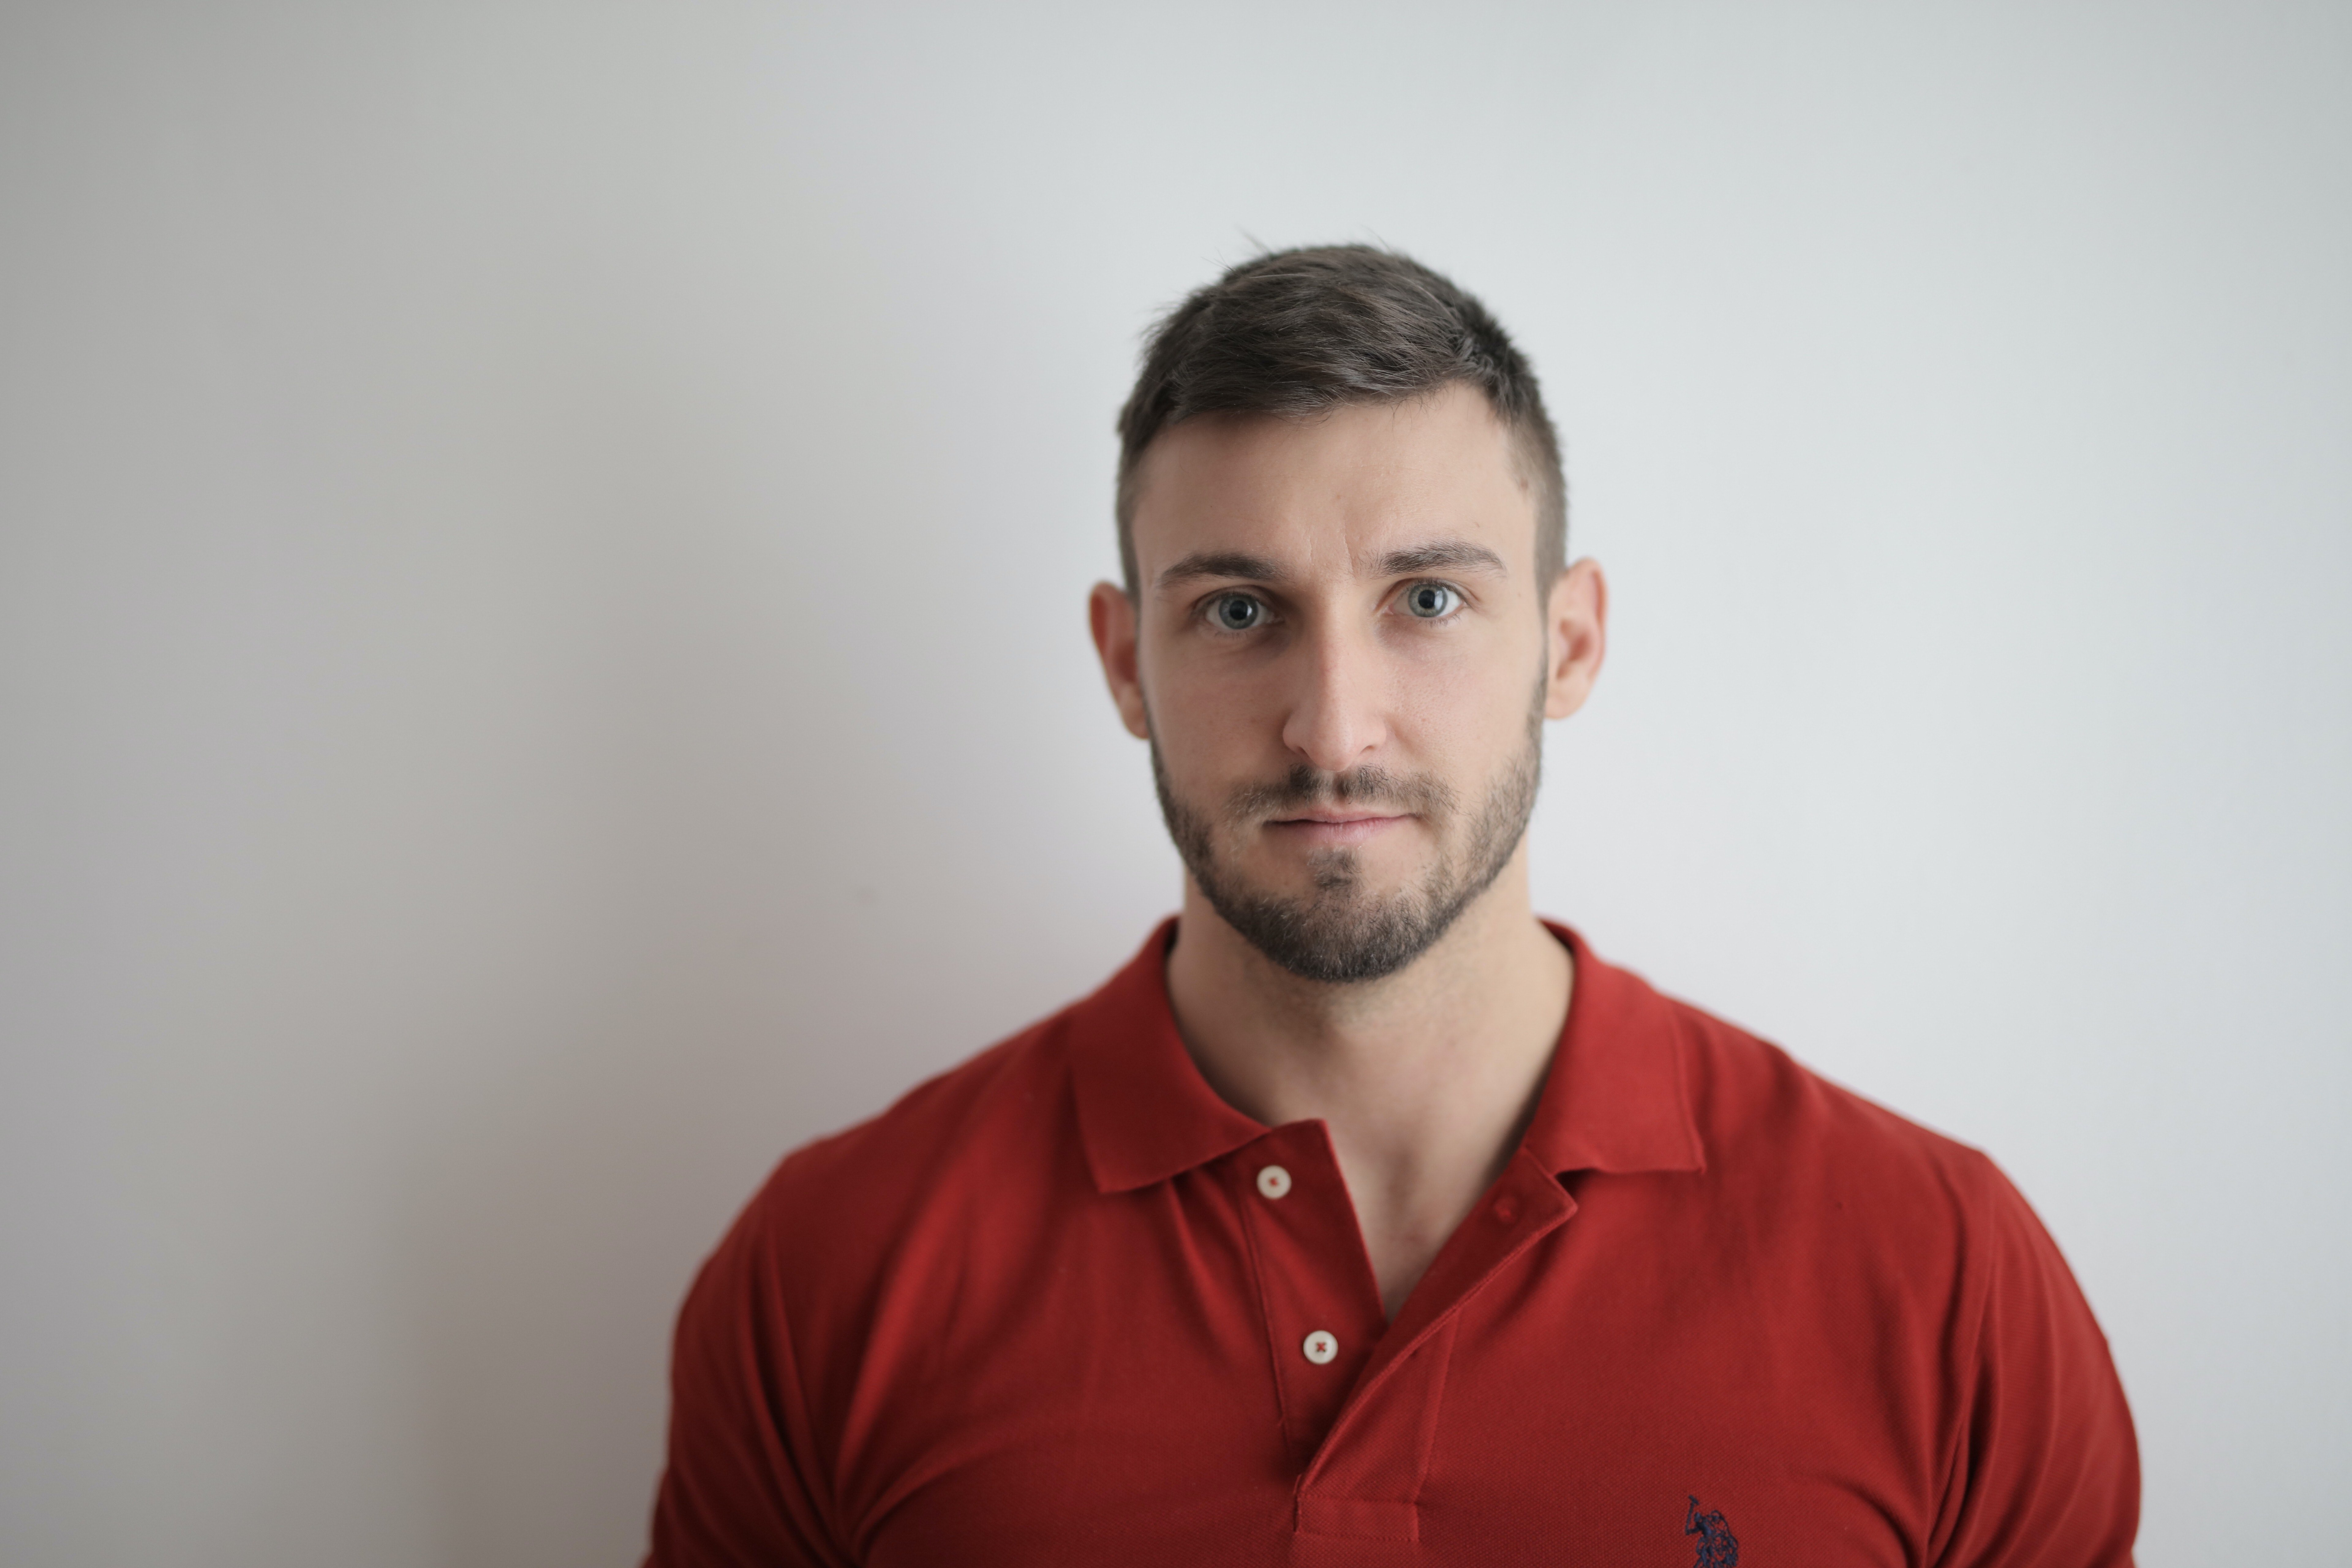 Man in a red polo shirt | Photo: Pexels